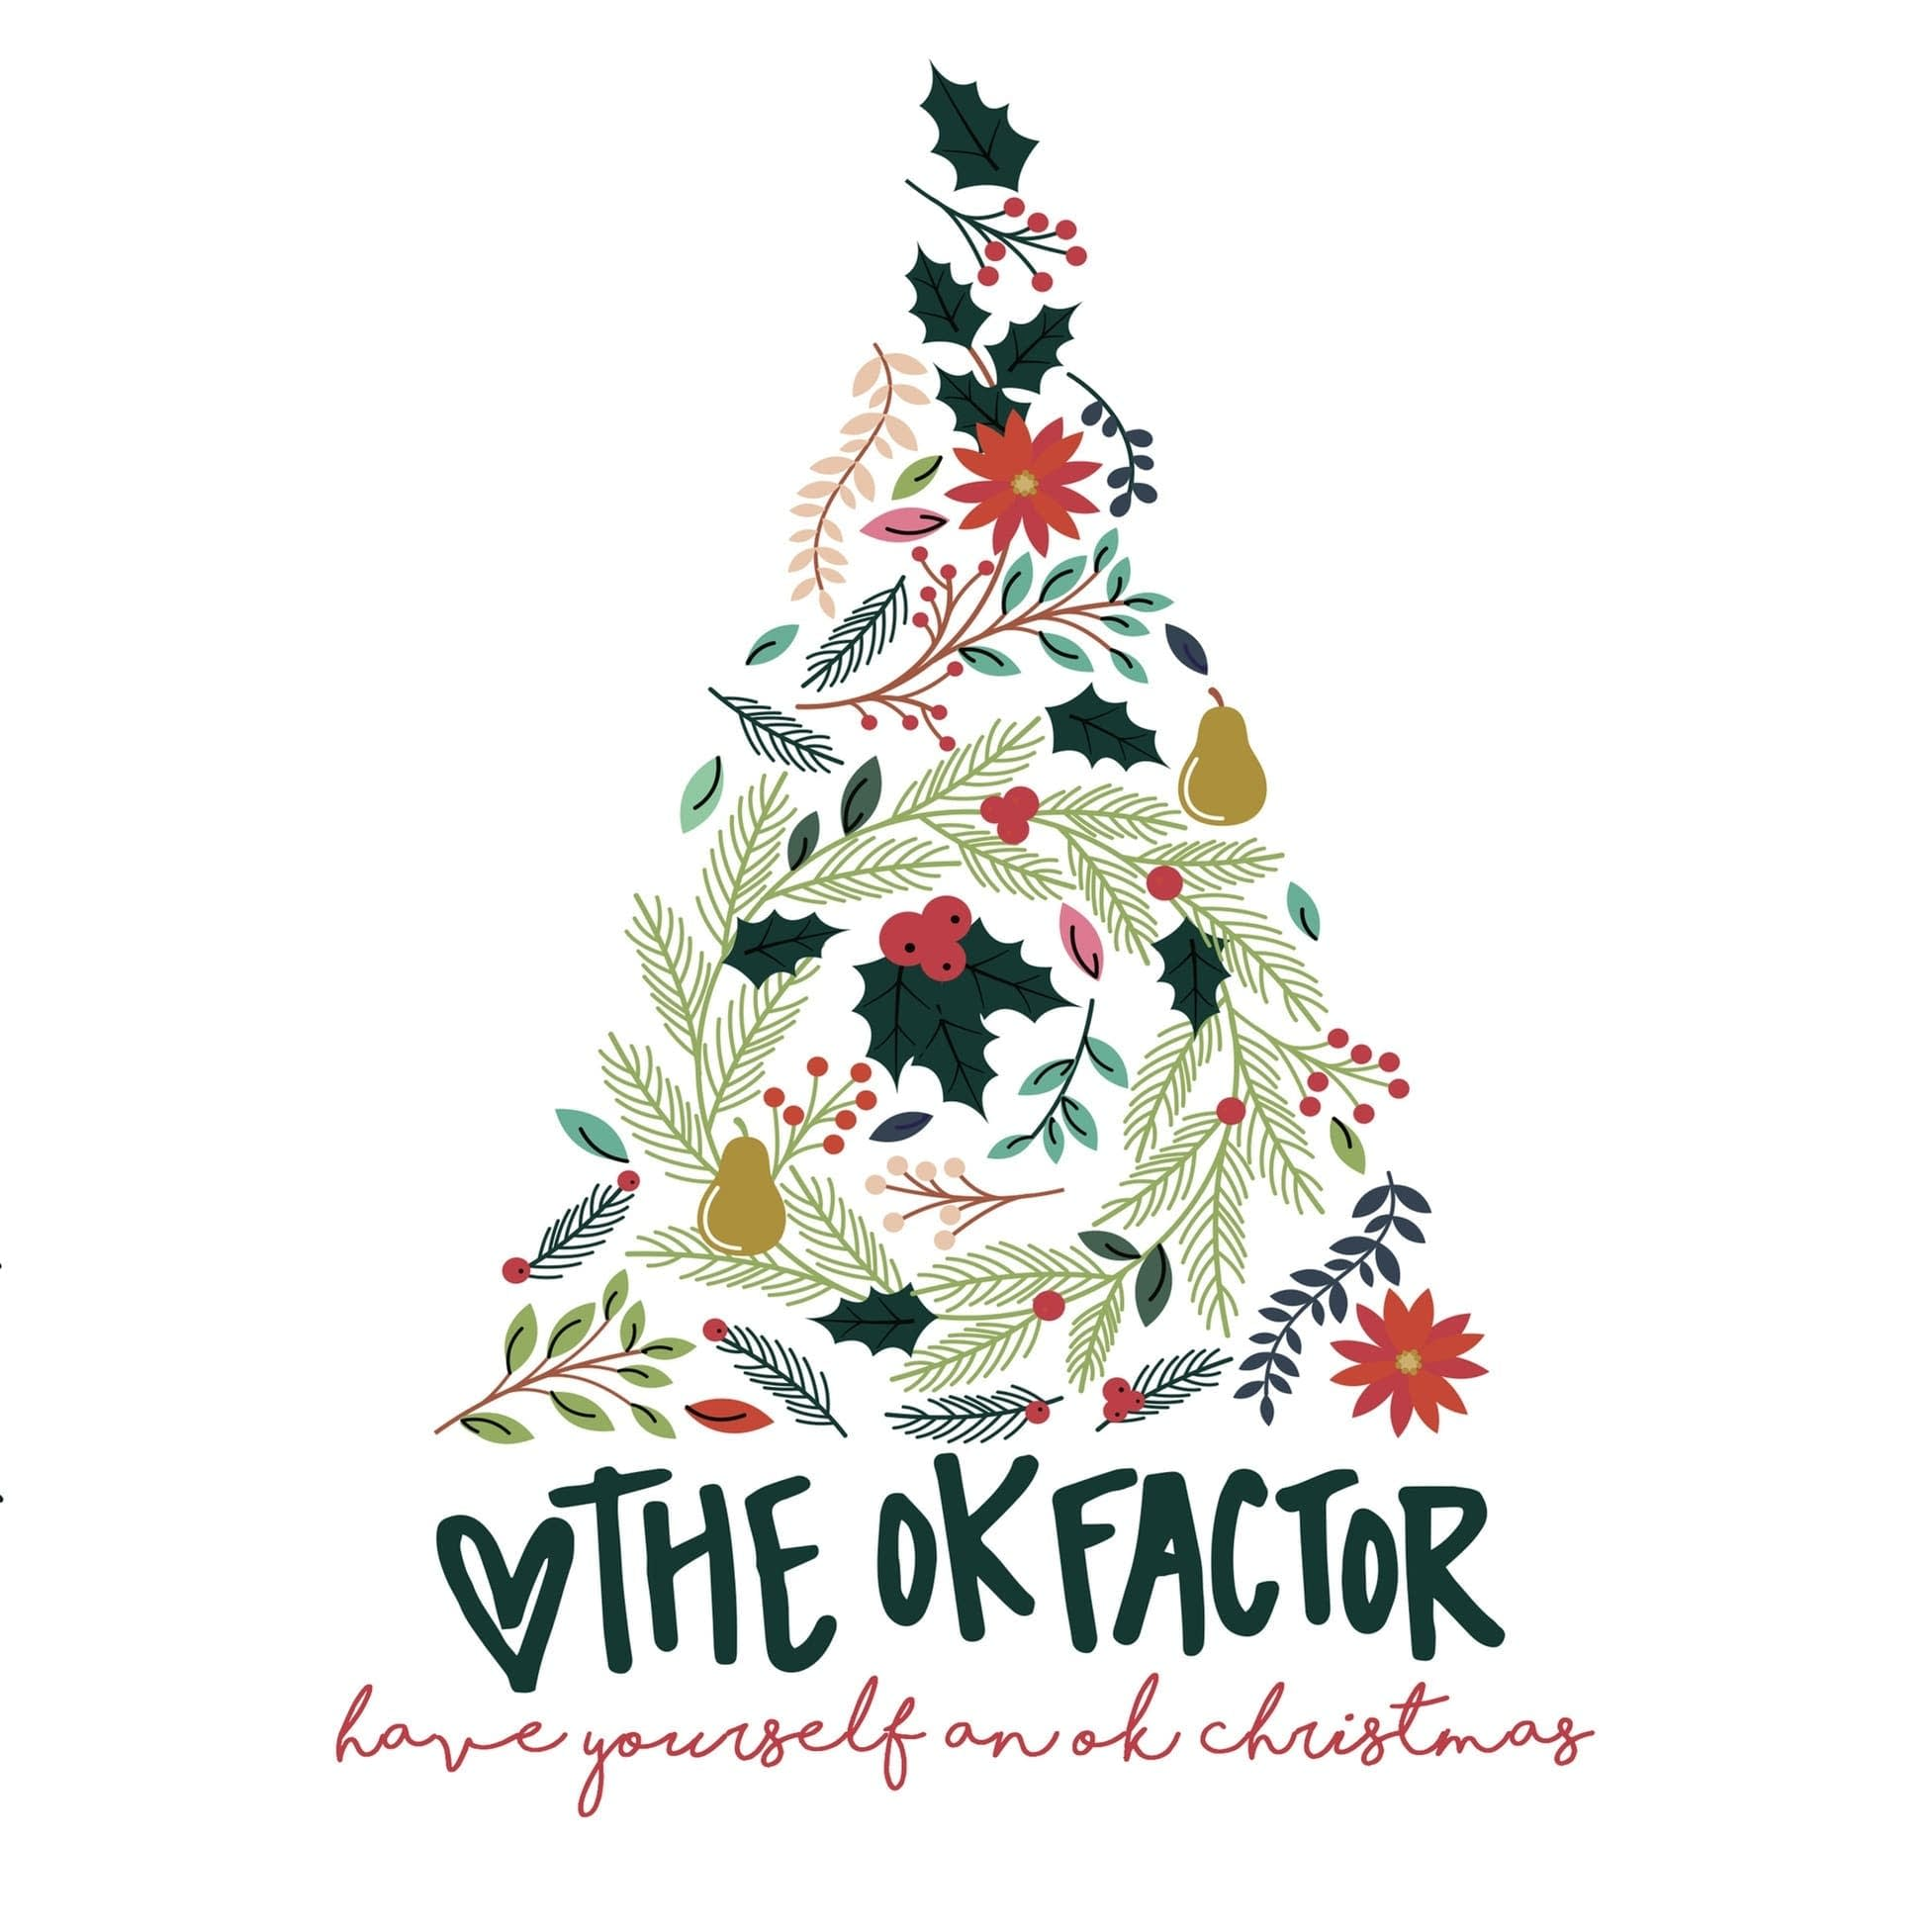 The OK Factor: Have Yourself an OK Christmas